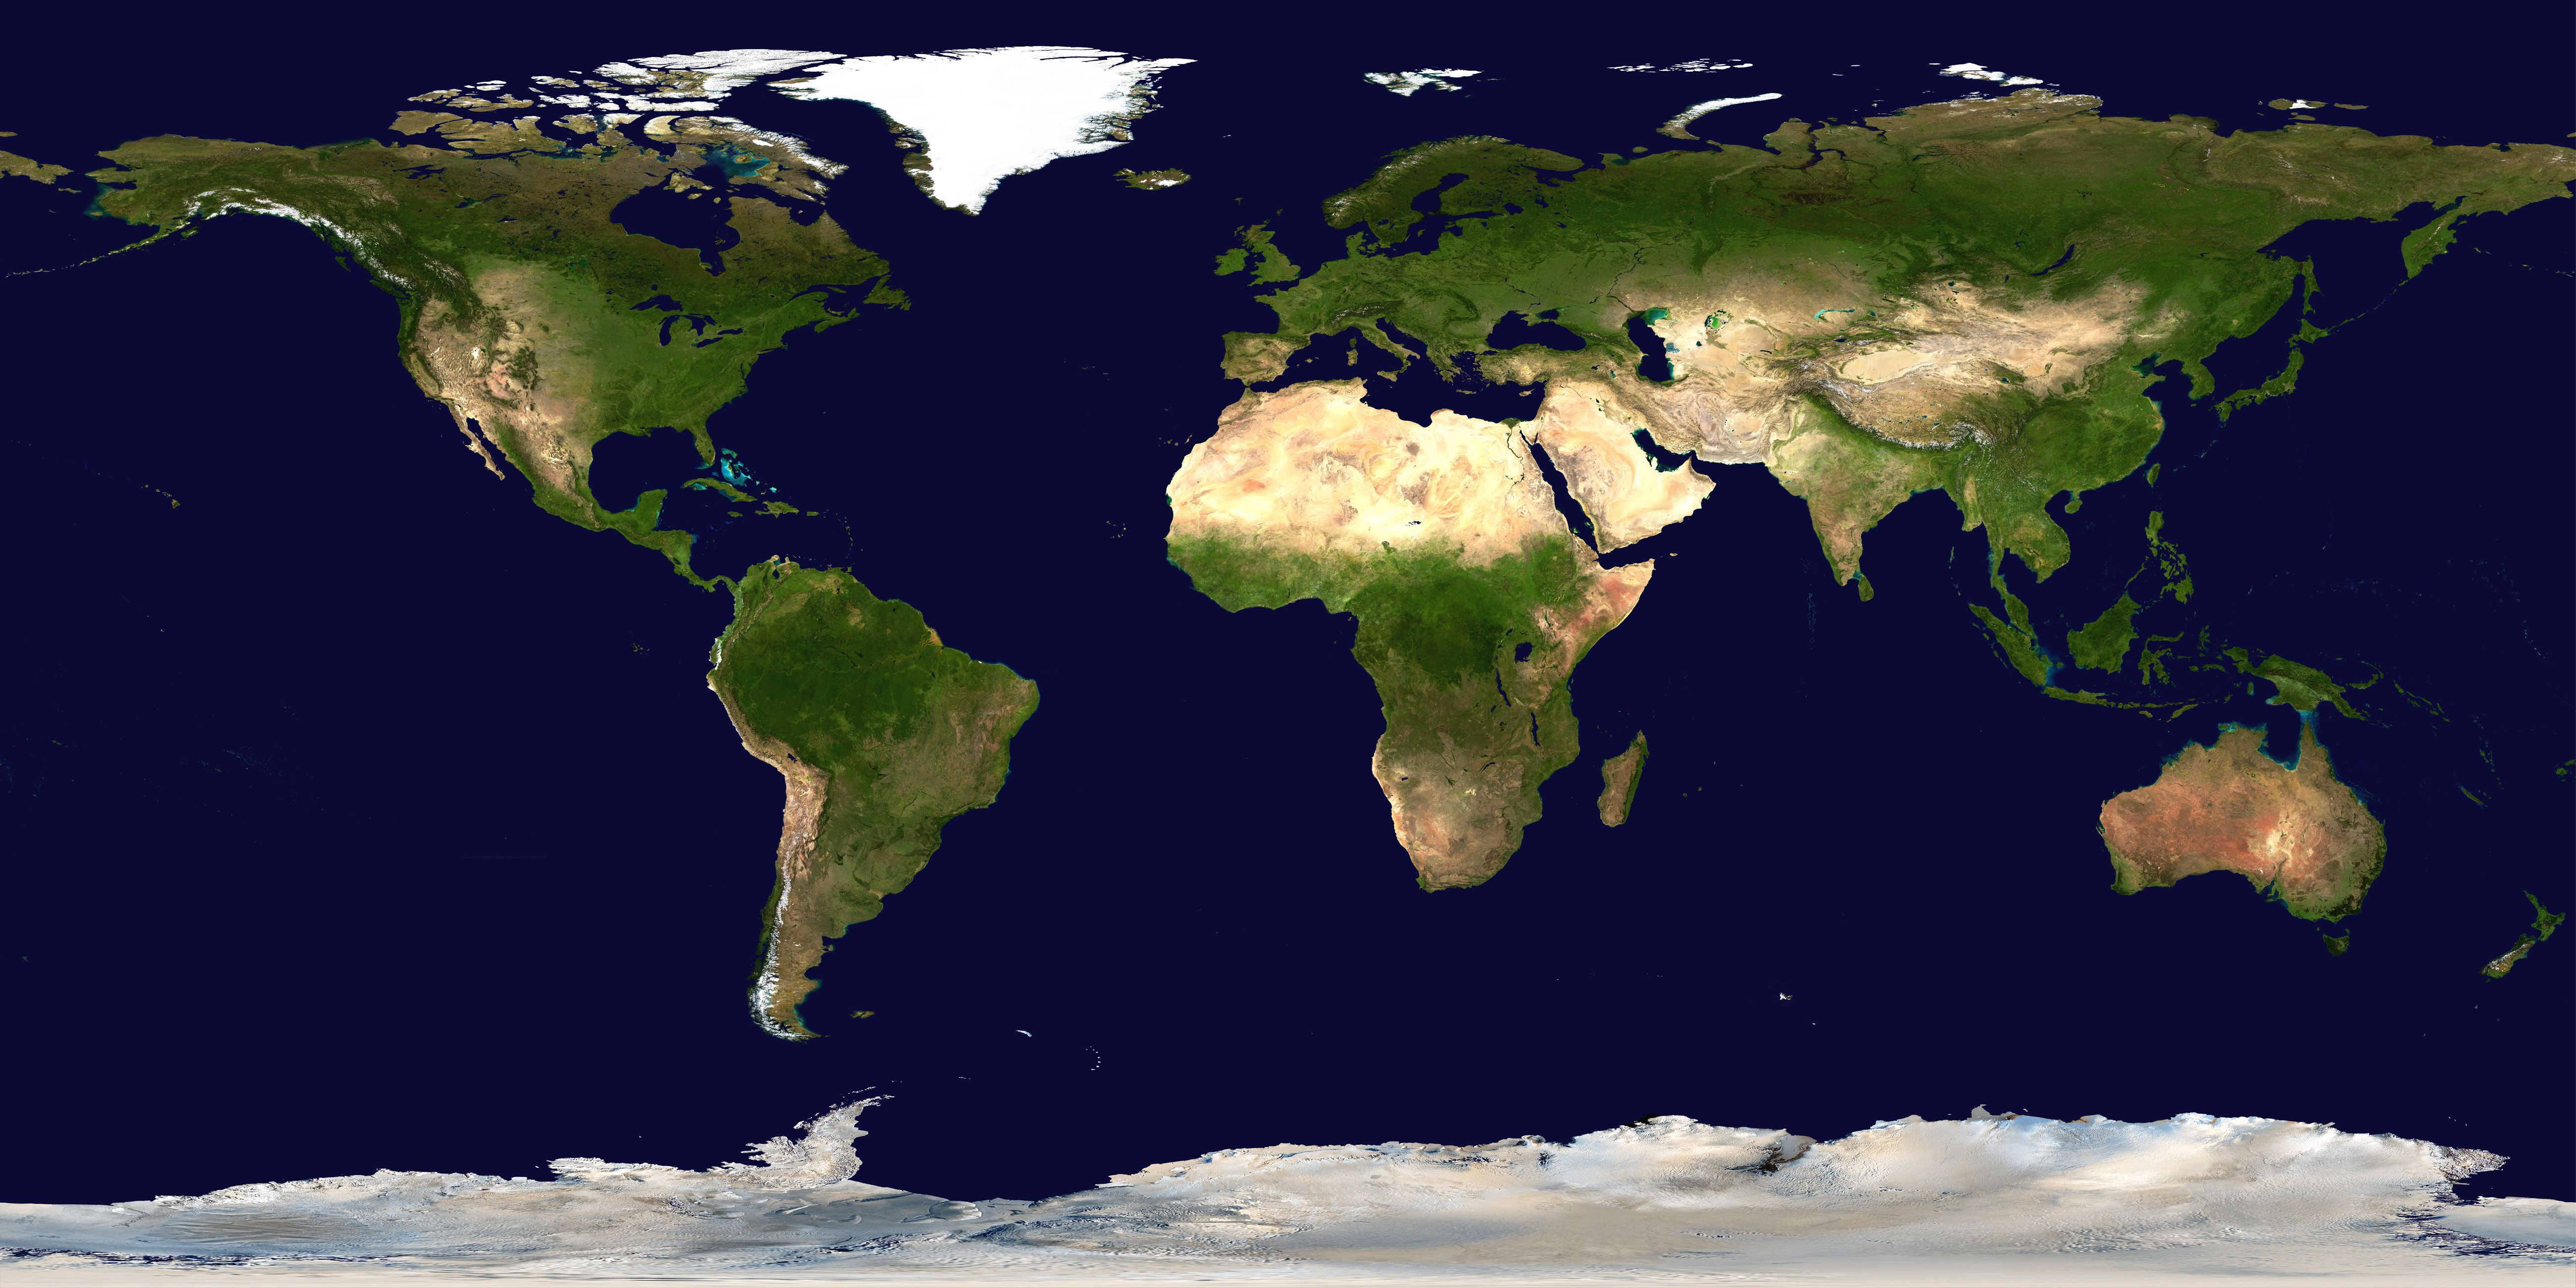 Large scale satellite map of the worldg 52002600 map pinterest large scale satellite map of the worldg gumiabroncs Choice Image